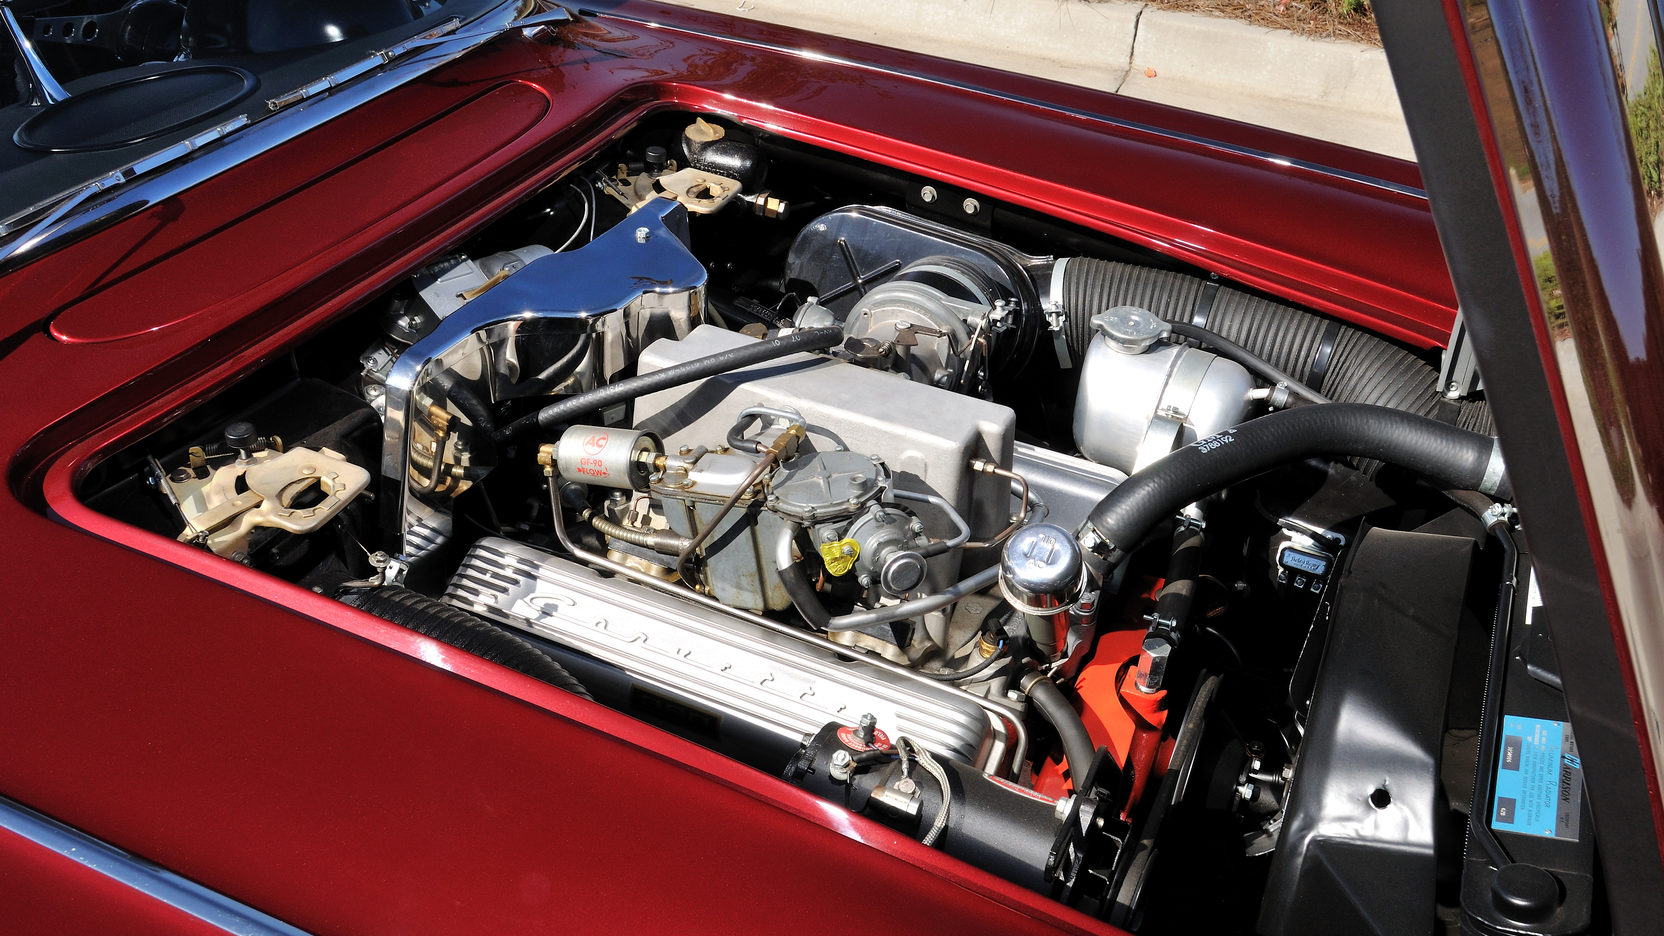 1962 Chevrolet Corvette 327 engine